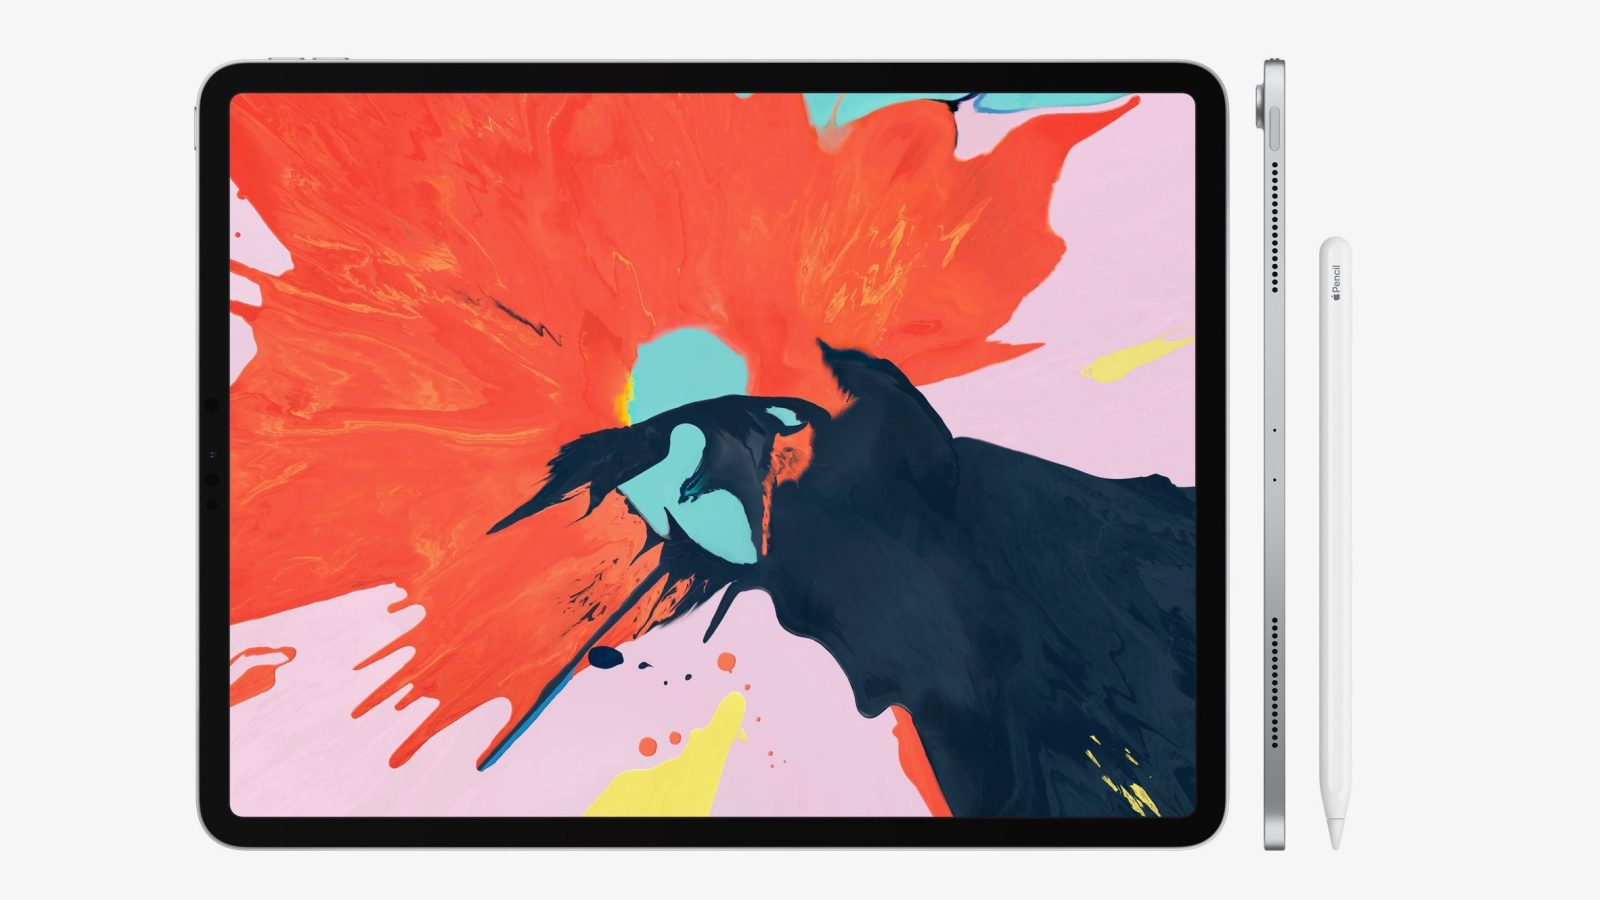 download the colorful new ipad pro wallpapers for your device right here gallery